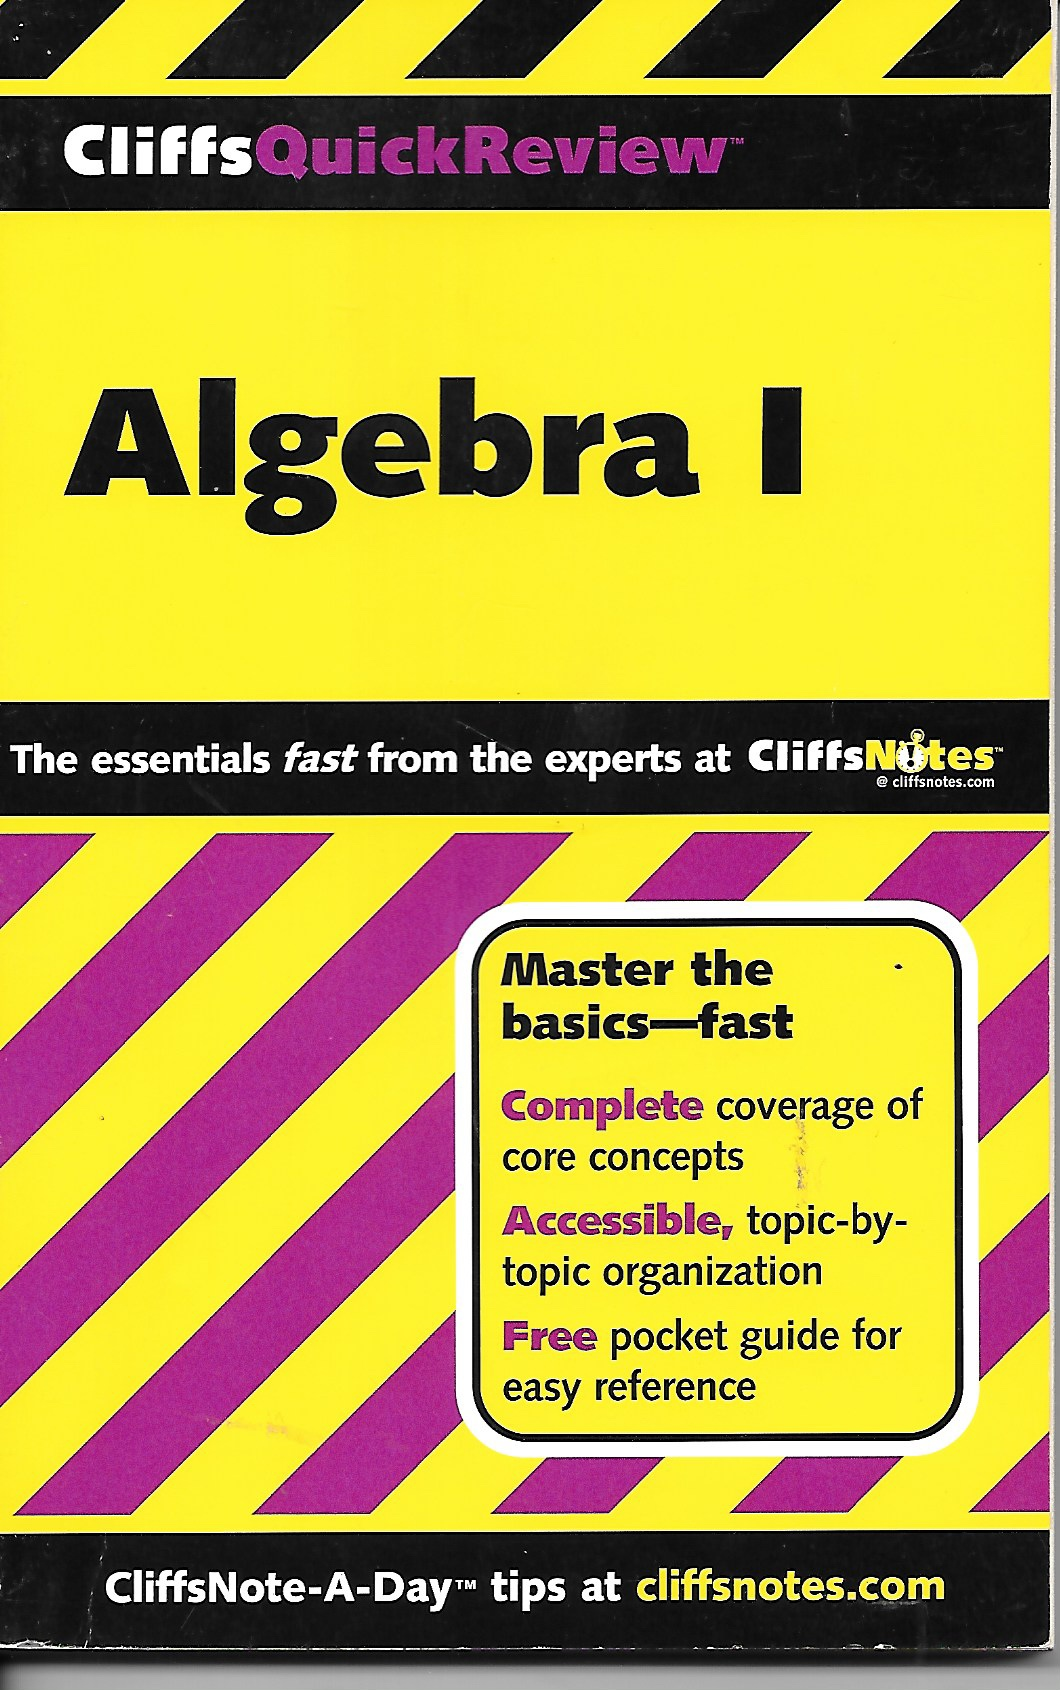 Image for Cliffs Quick Review Algebra I Master the Basic Fast